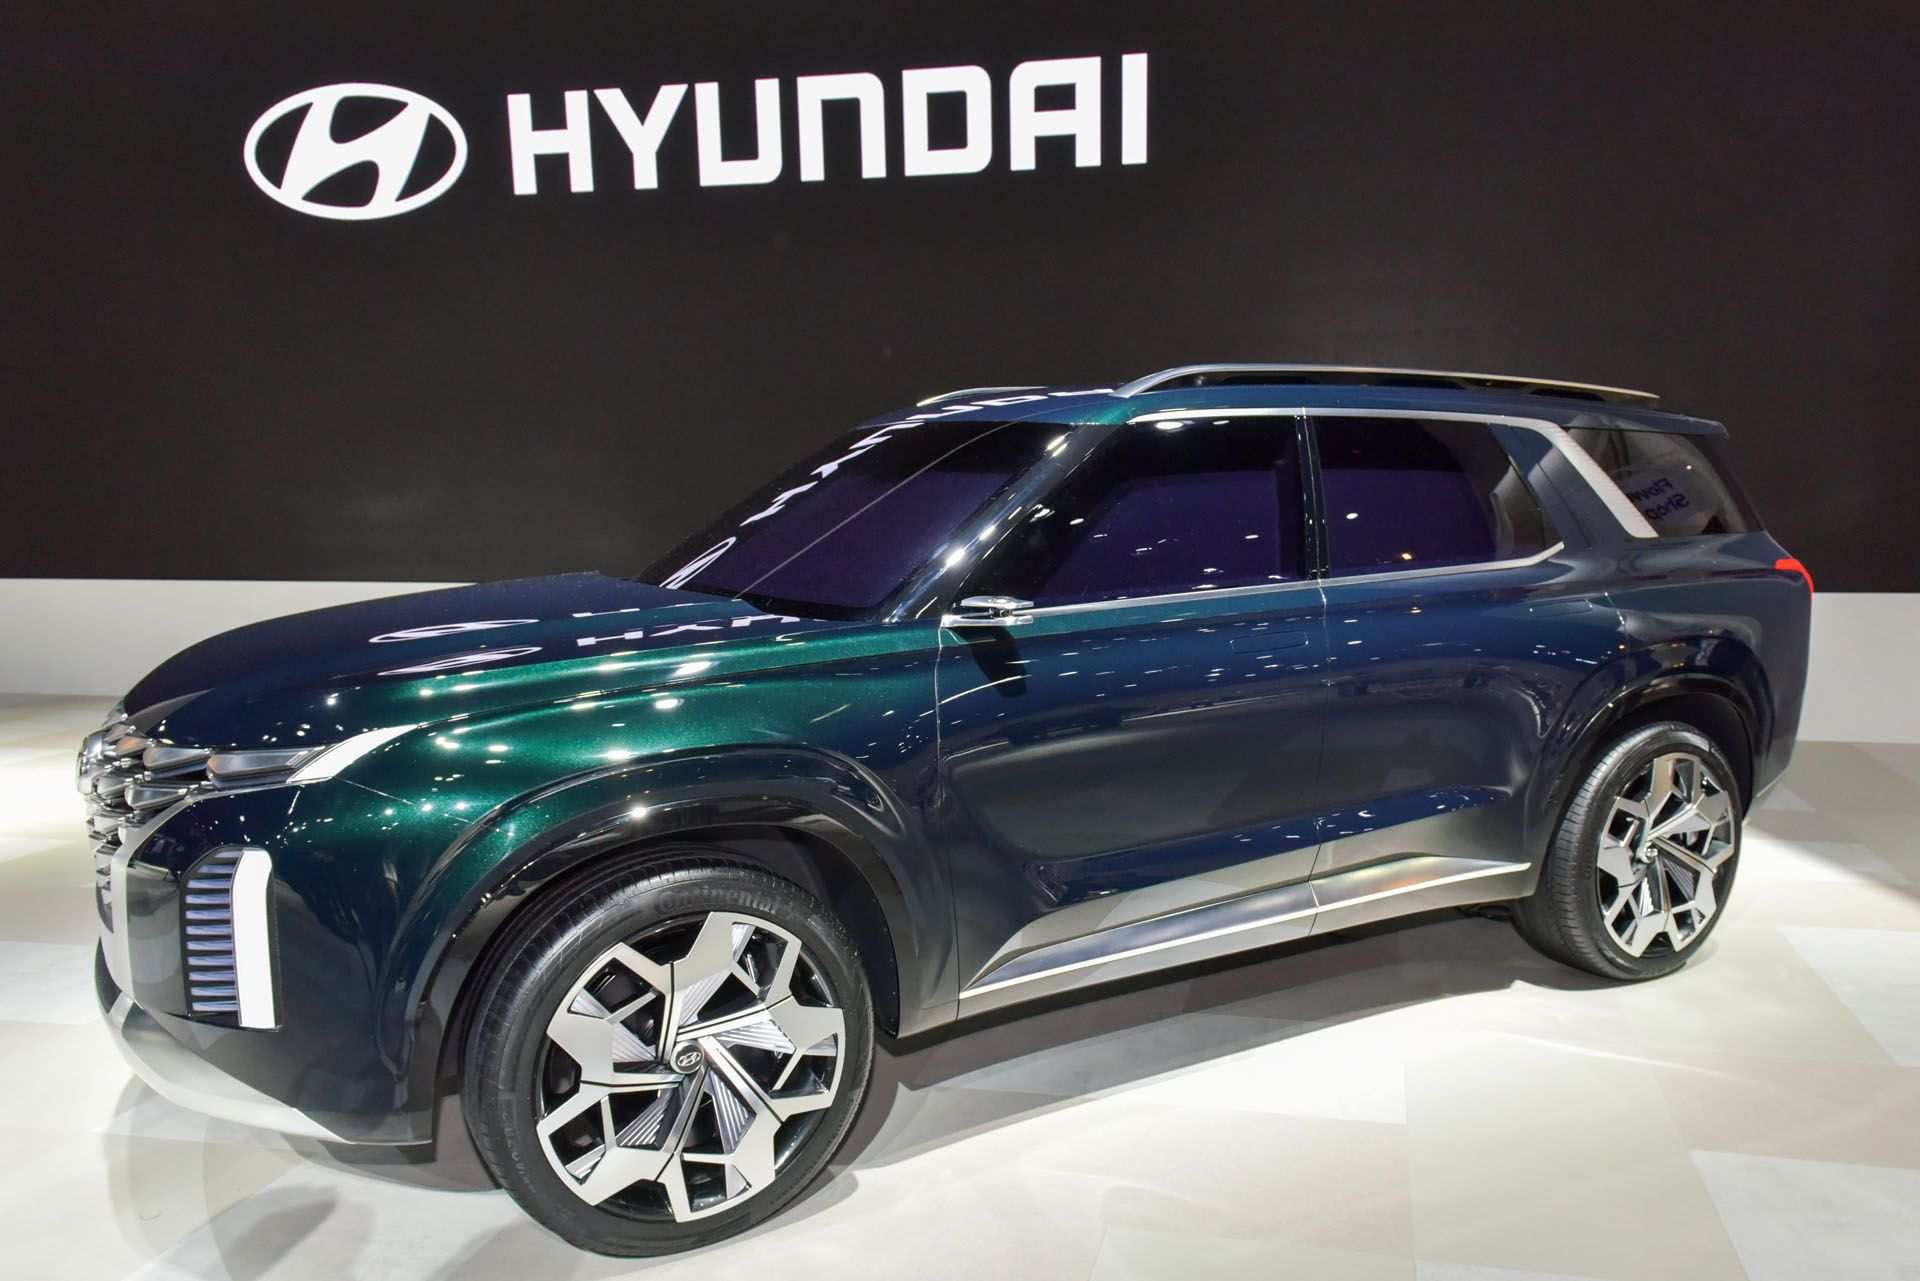 35 Concept of Hyundai Large Suv 2020 Model for Hyundai Large Suv 2020